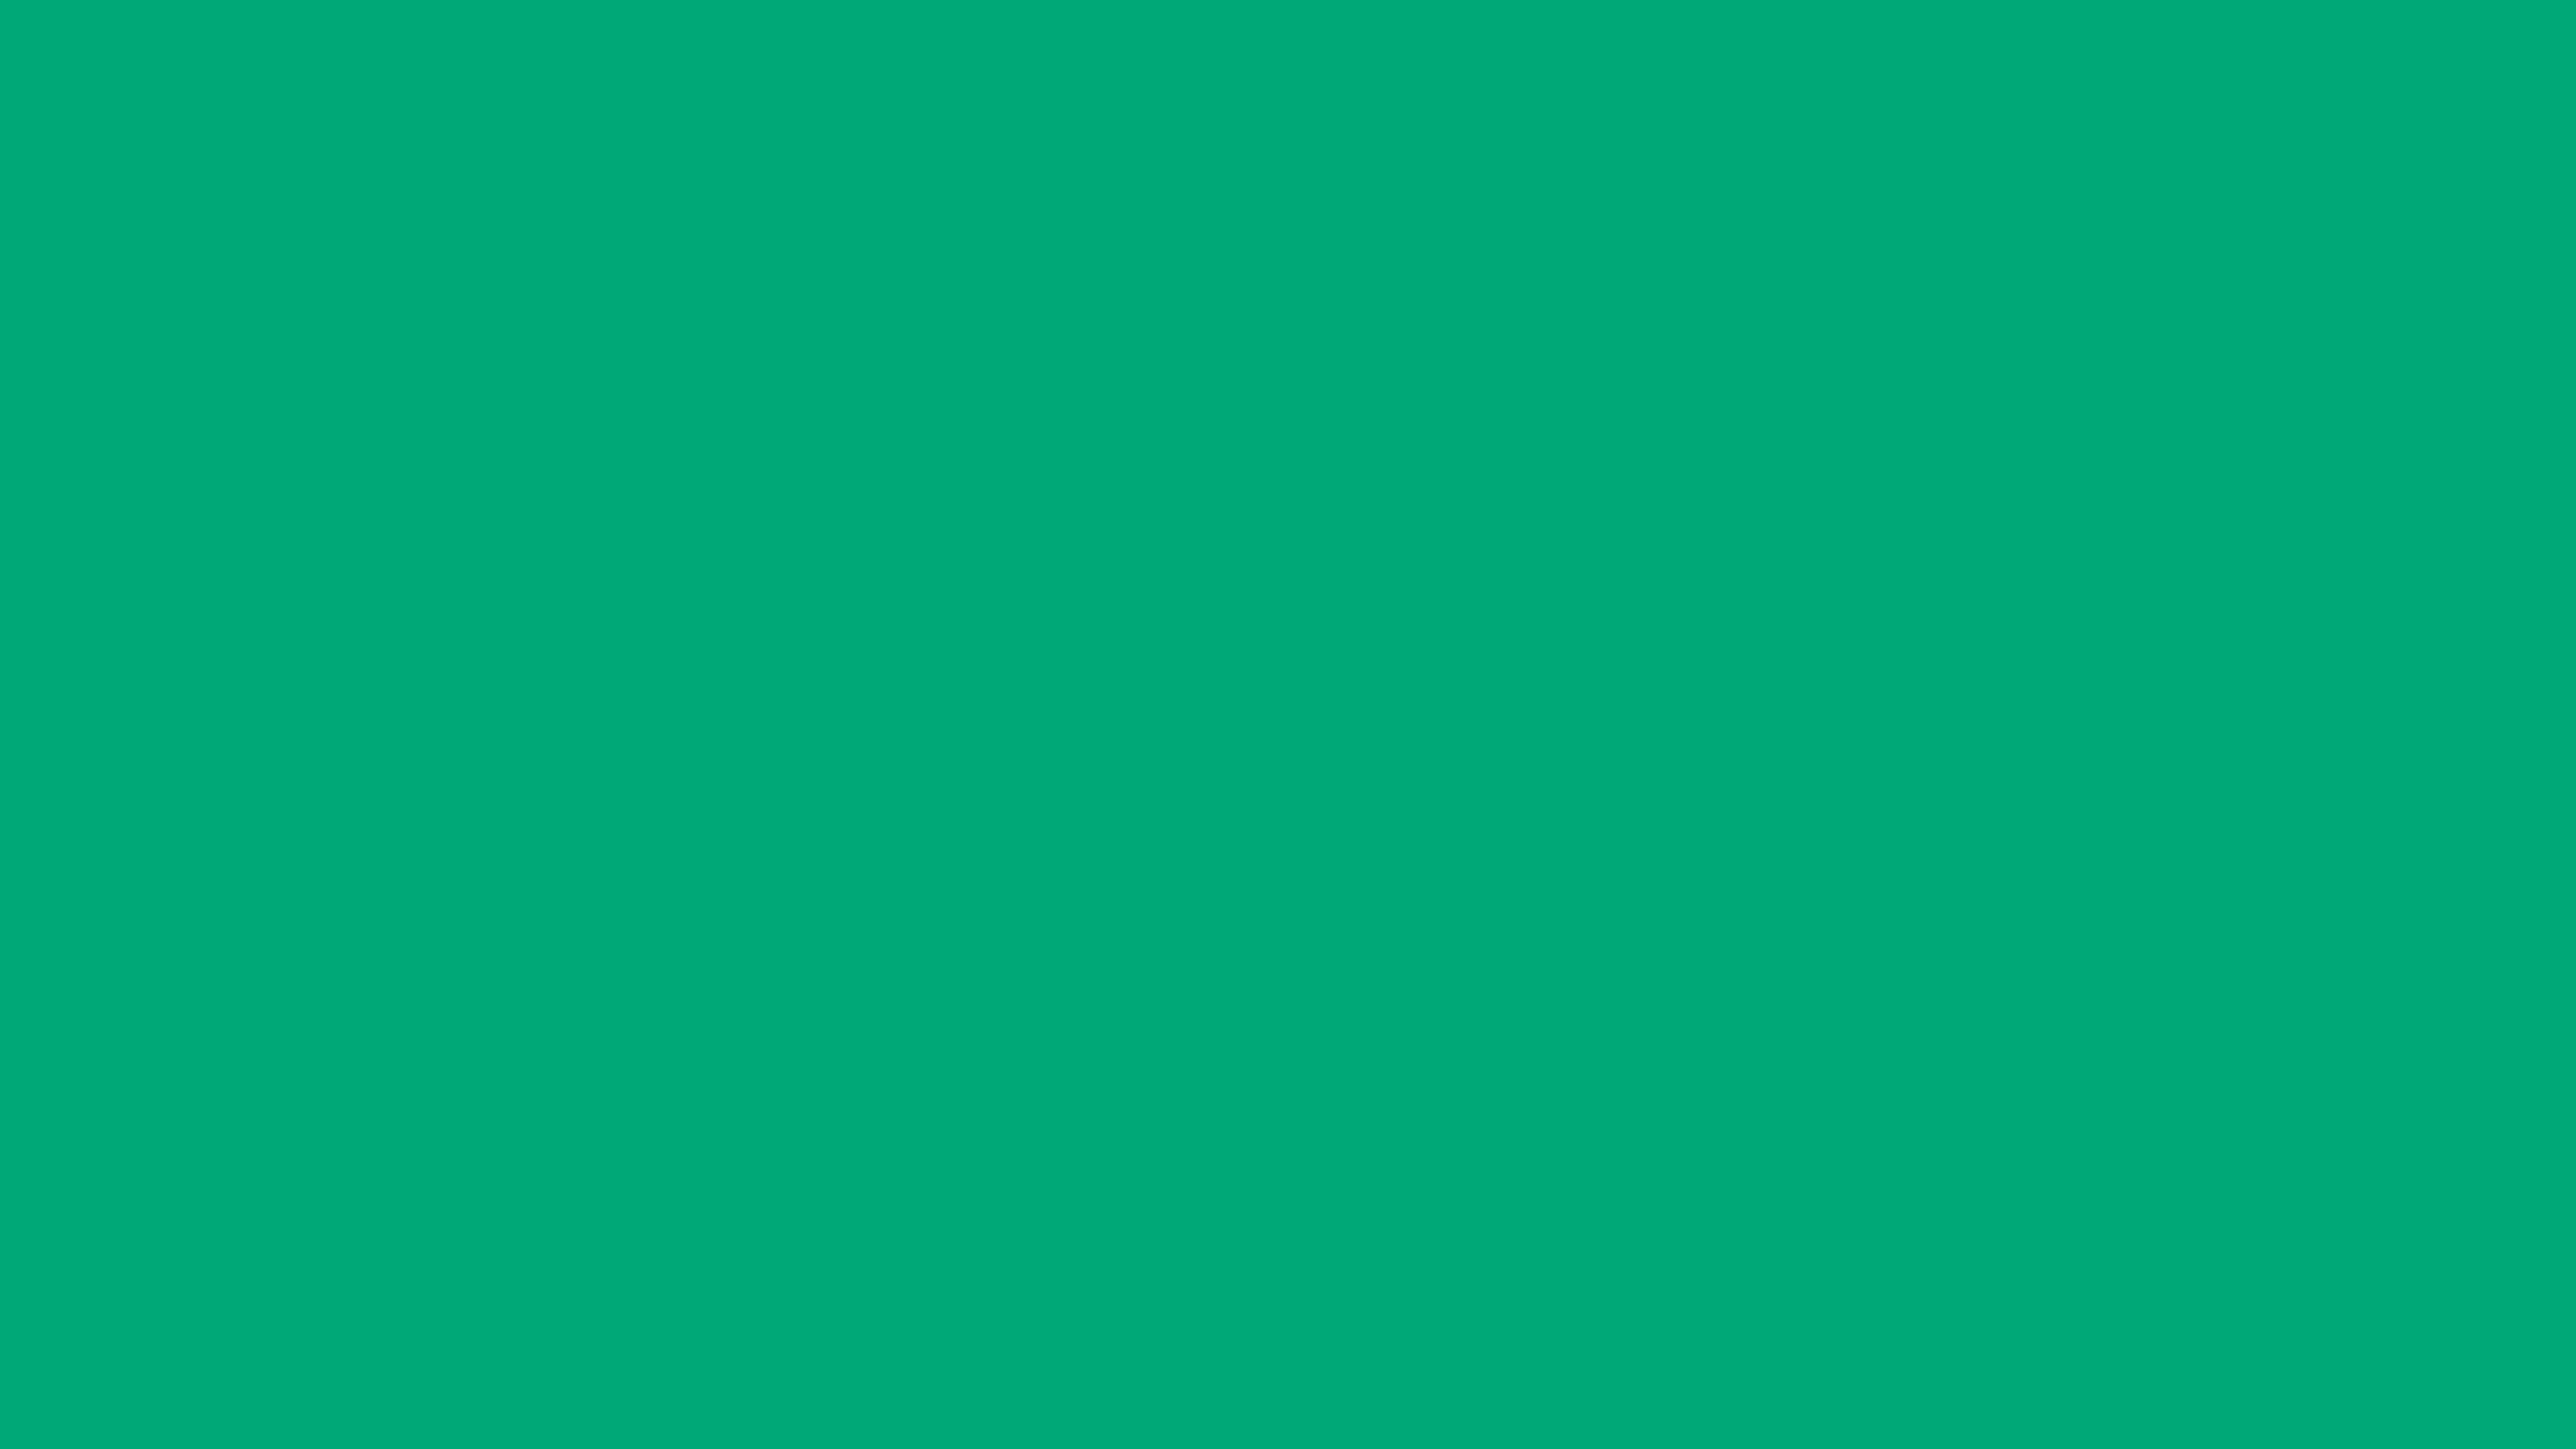 3840x2160 Green Munsell Solid Color Background